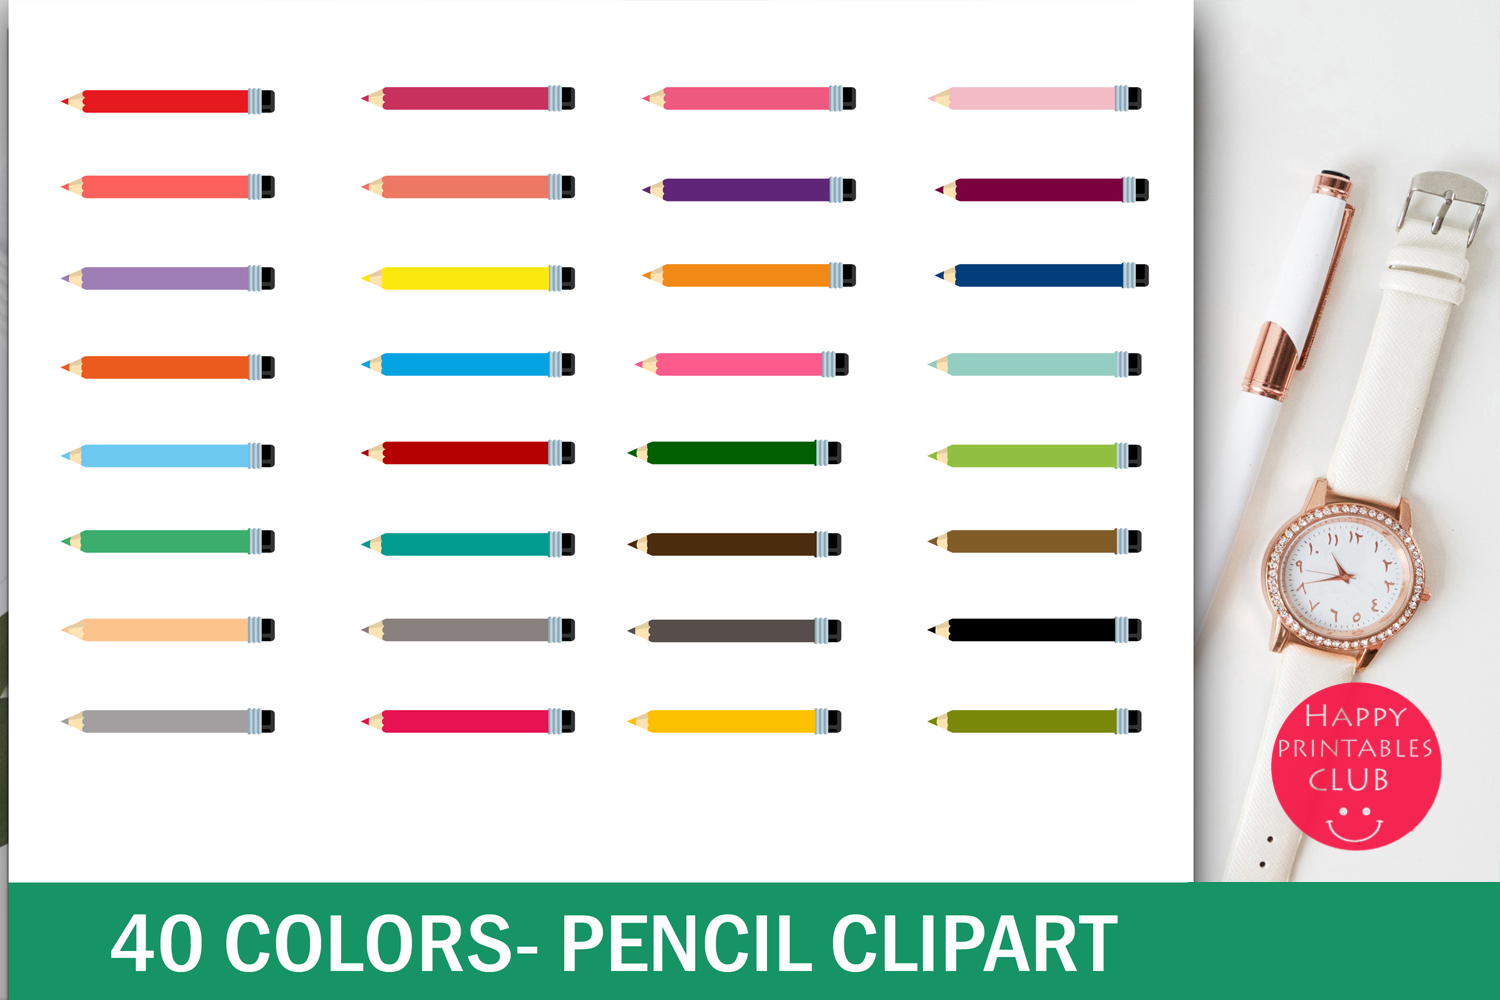 40 Colors Pencil Clipart example image 1